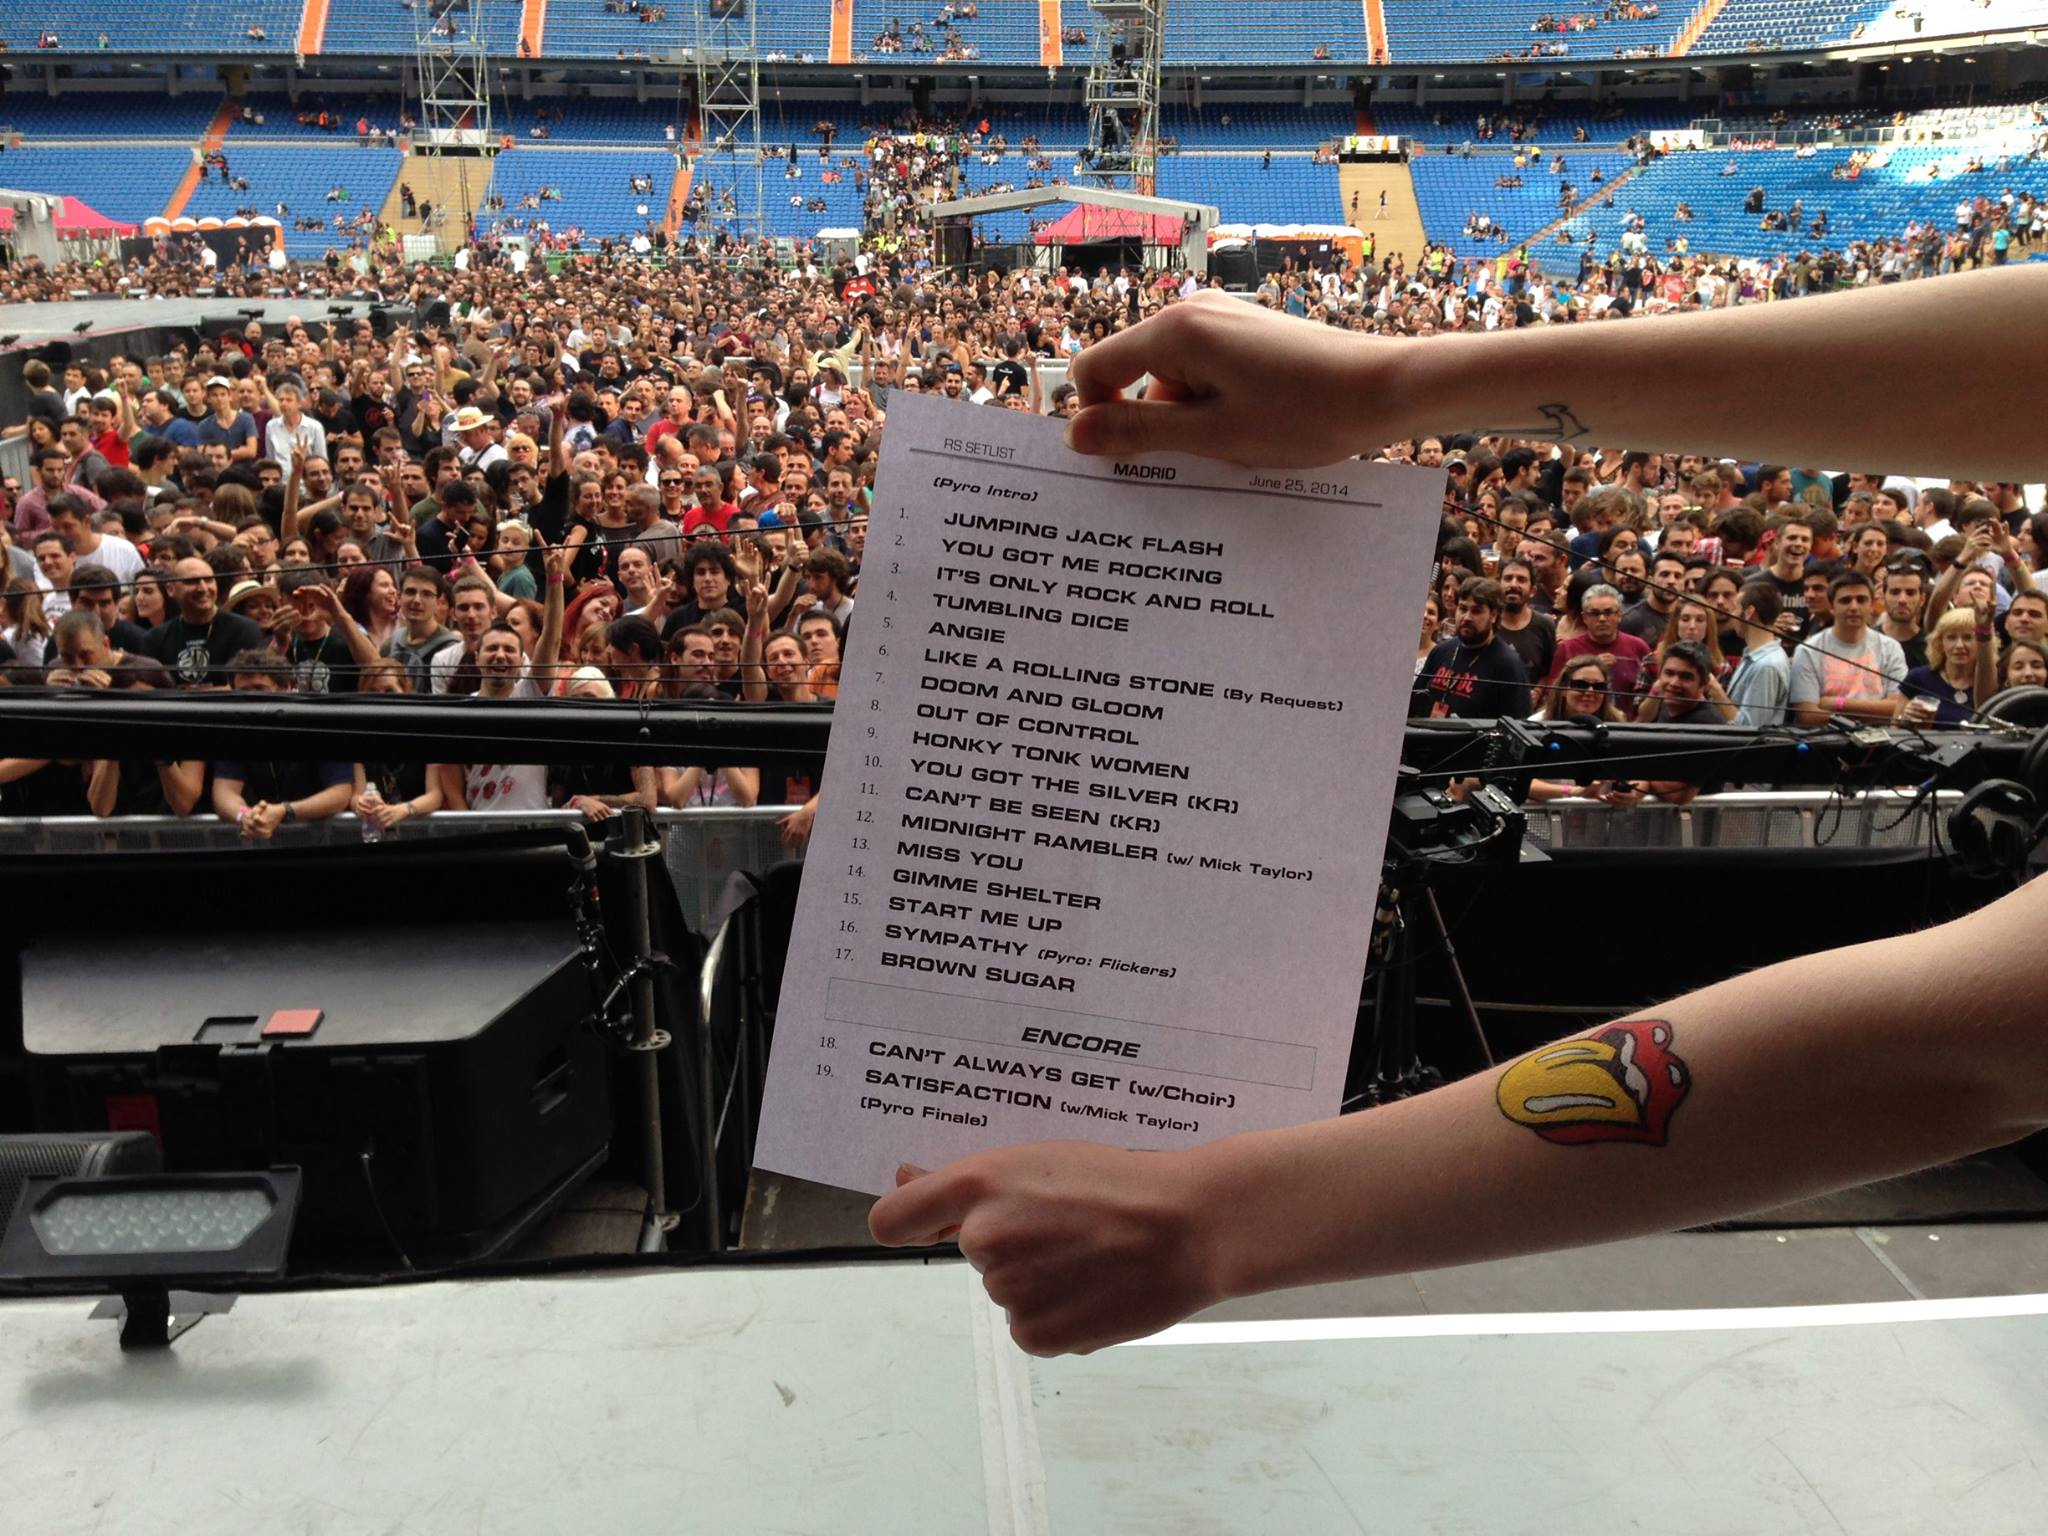 Crónica - The Rolling Stones, Santiago Bernabeu, Madrid. Setlist